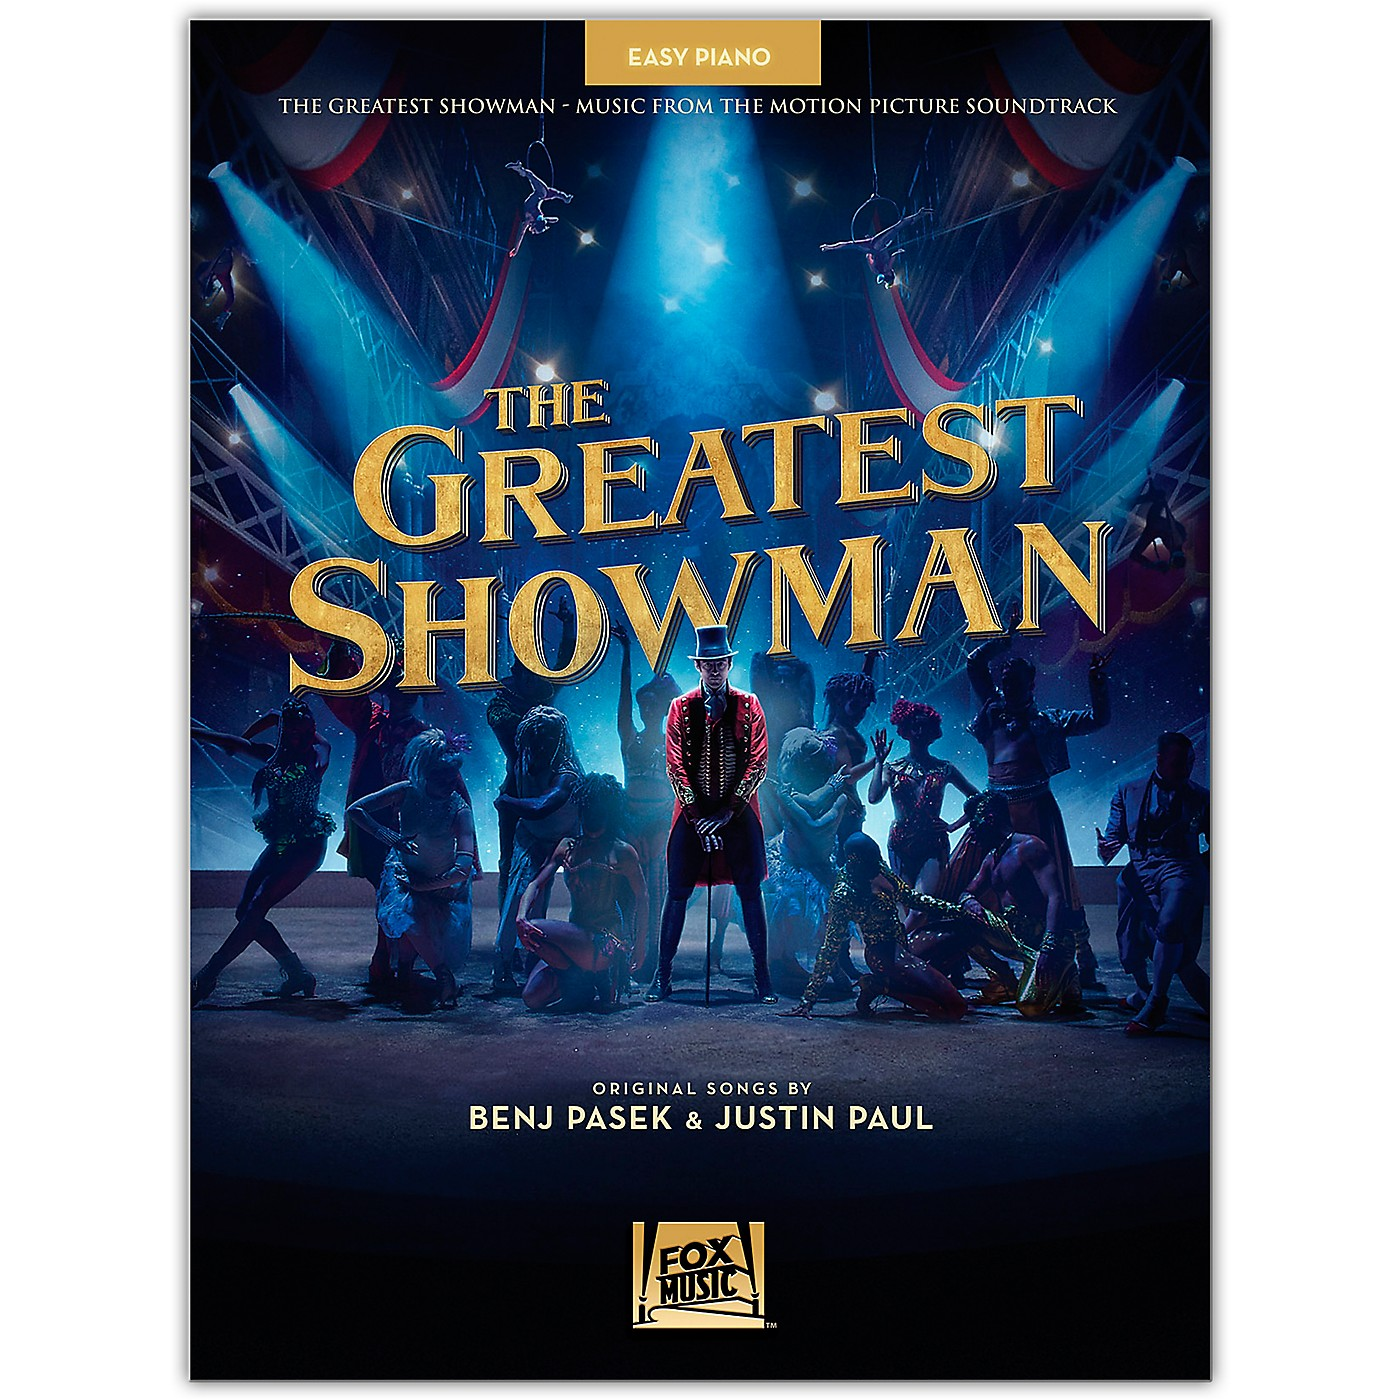 Hal Leonard The Greatest Showman Music from the Motion Picture Soundtrack for Easy Piano thumbnail